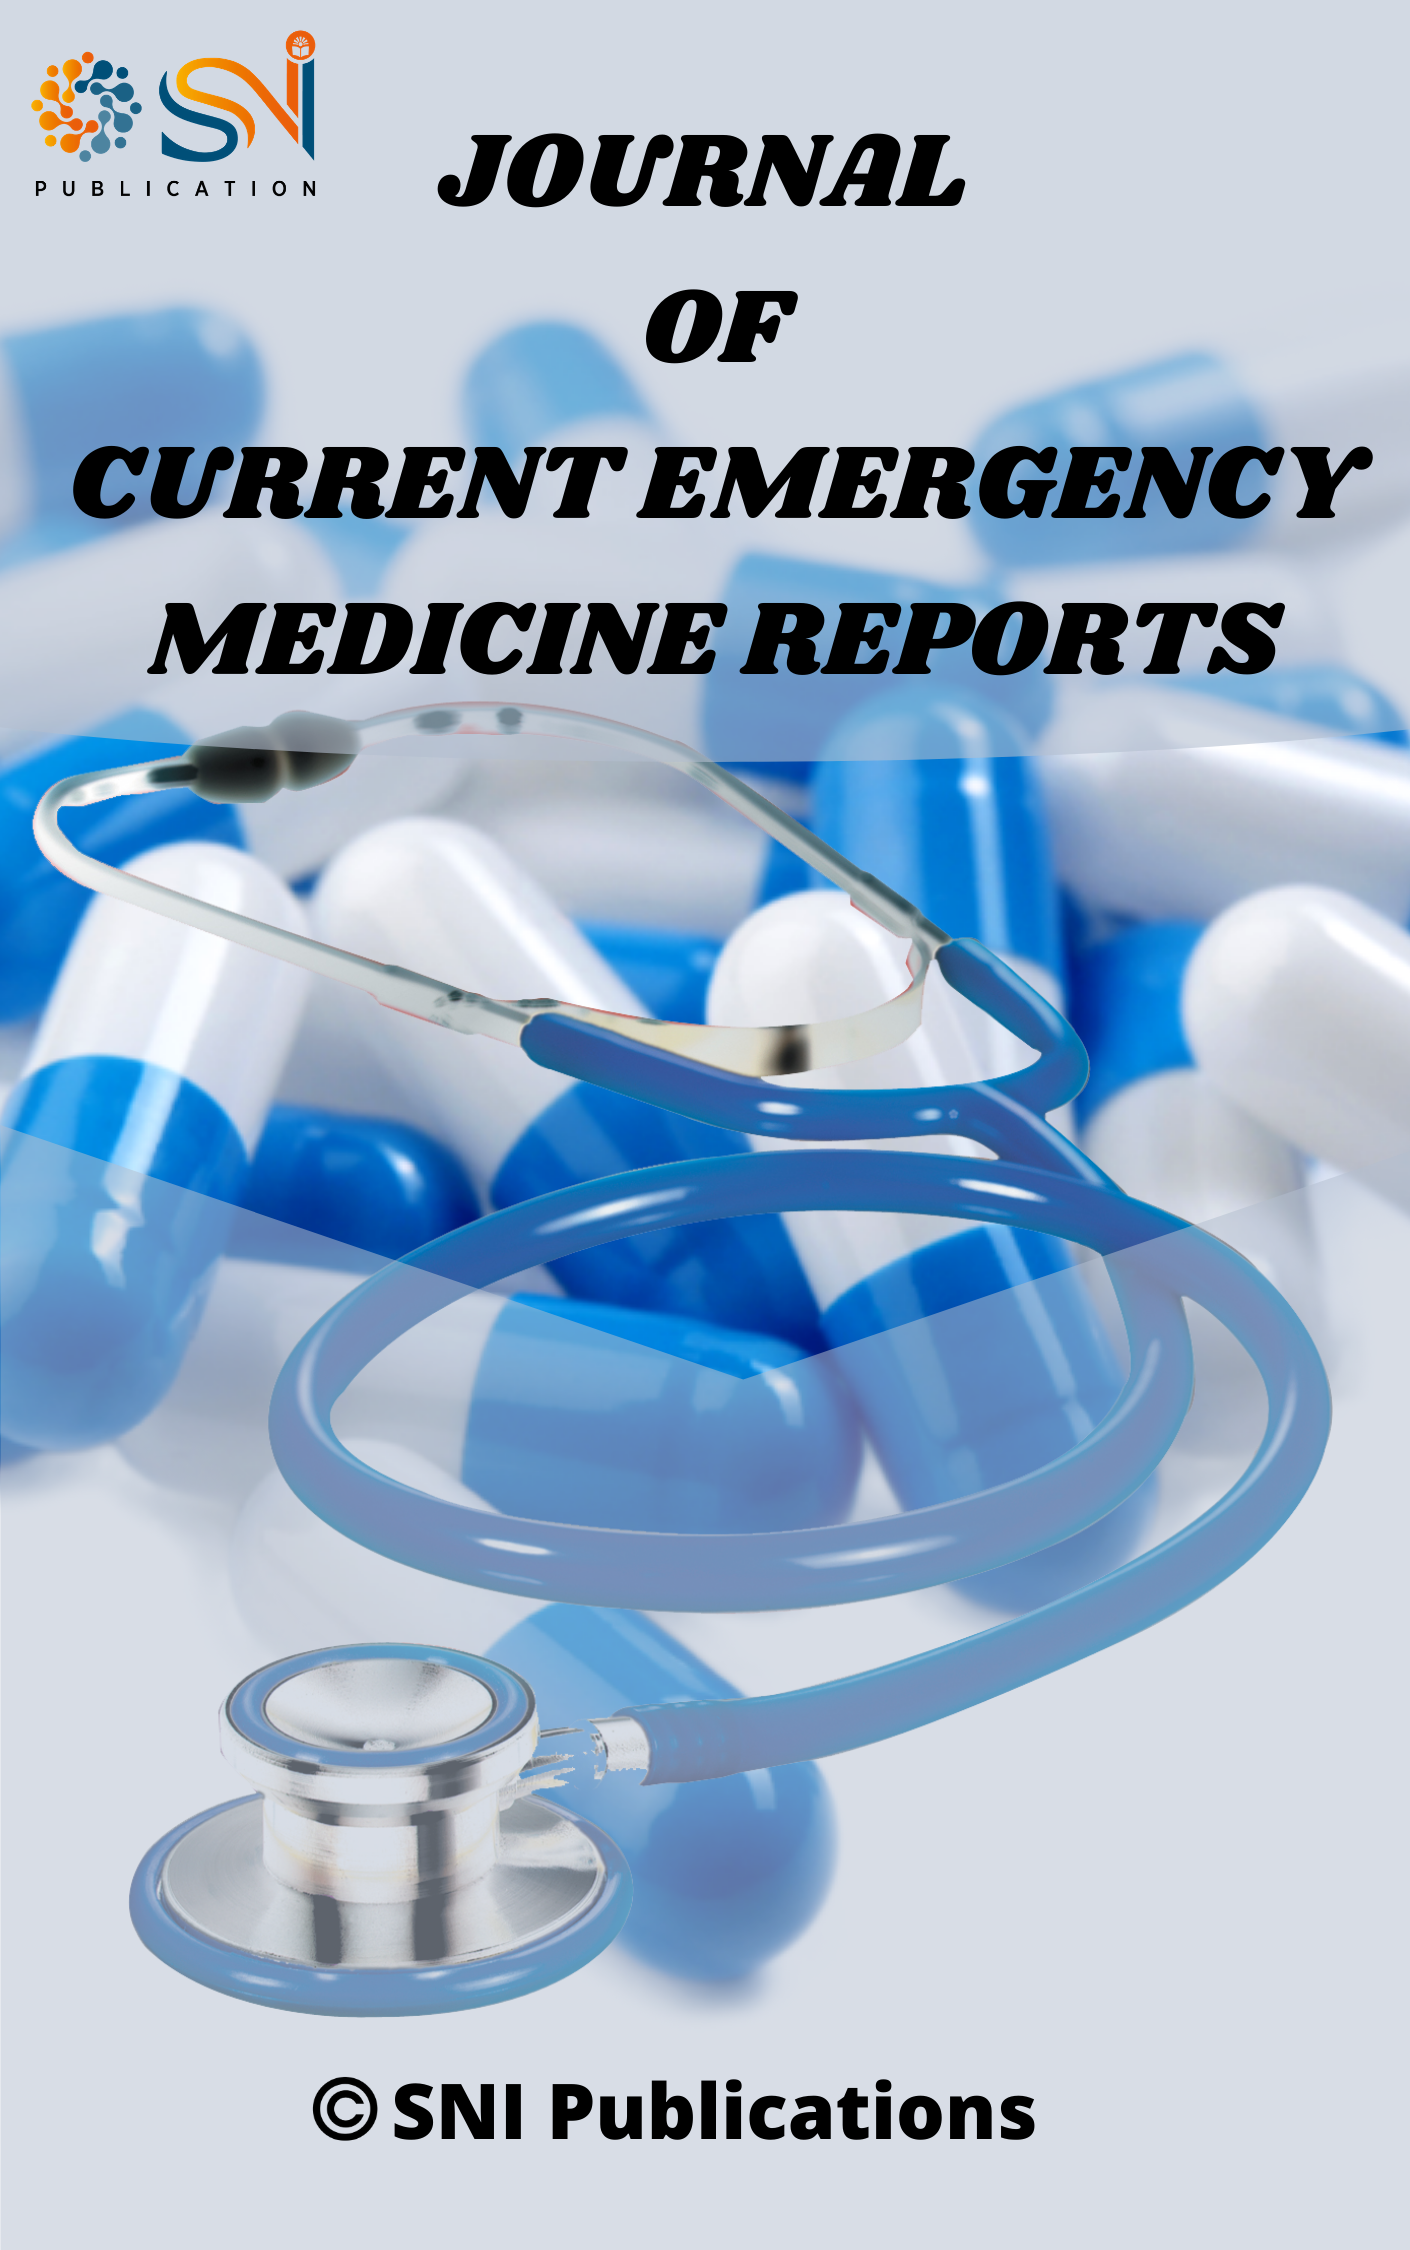 Journal of Current Emergency Medicine Reports